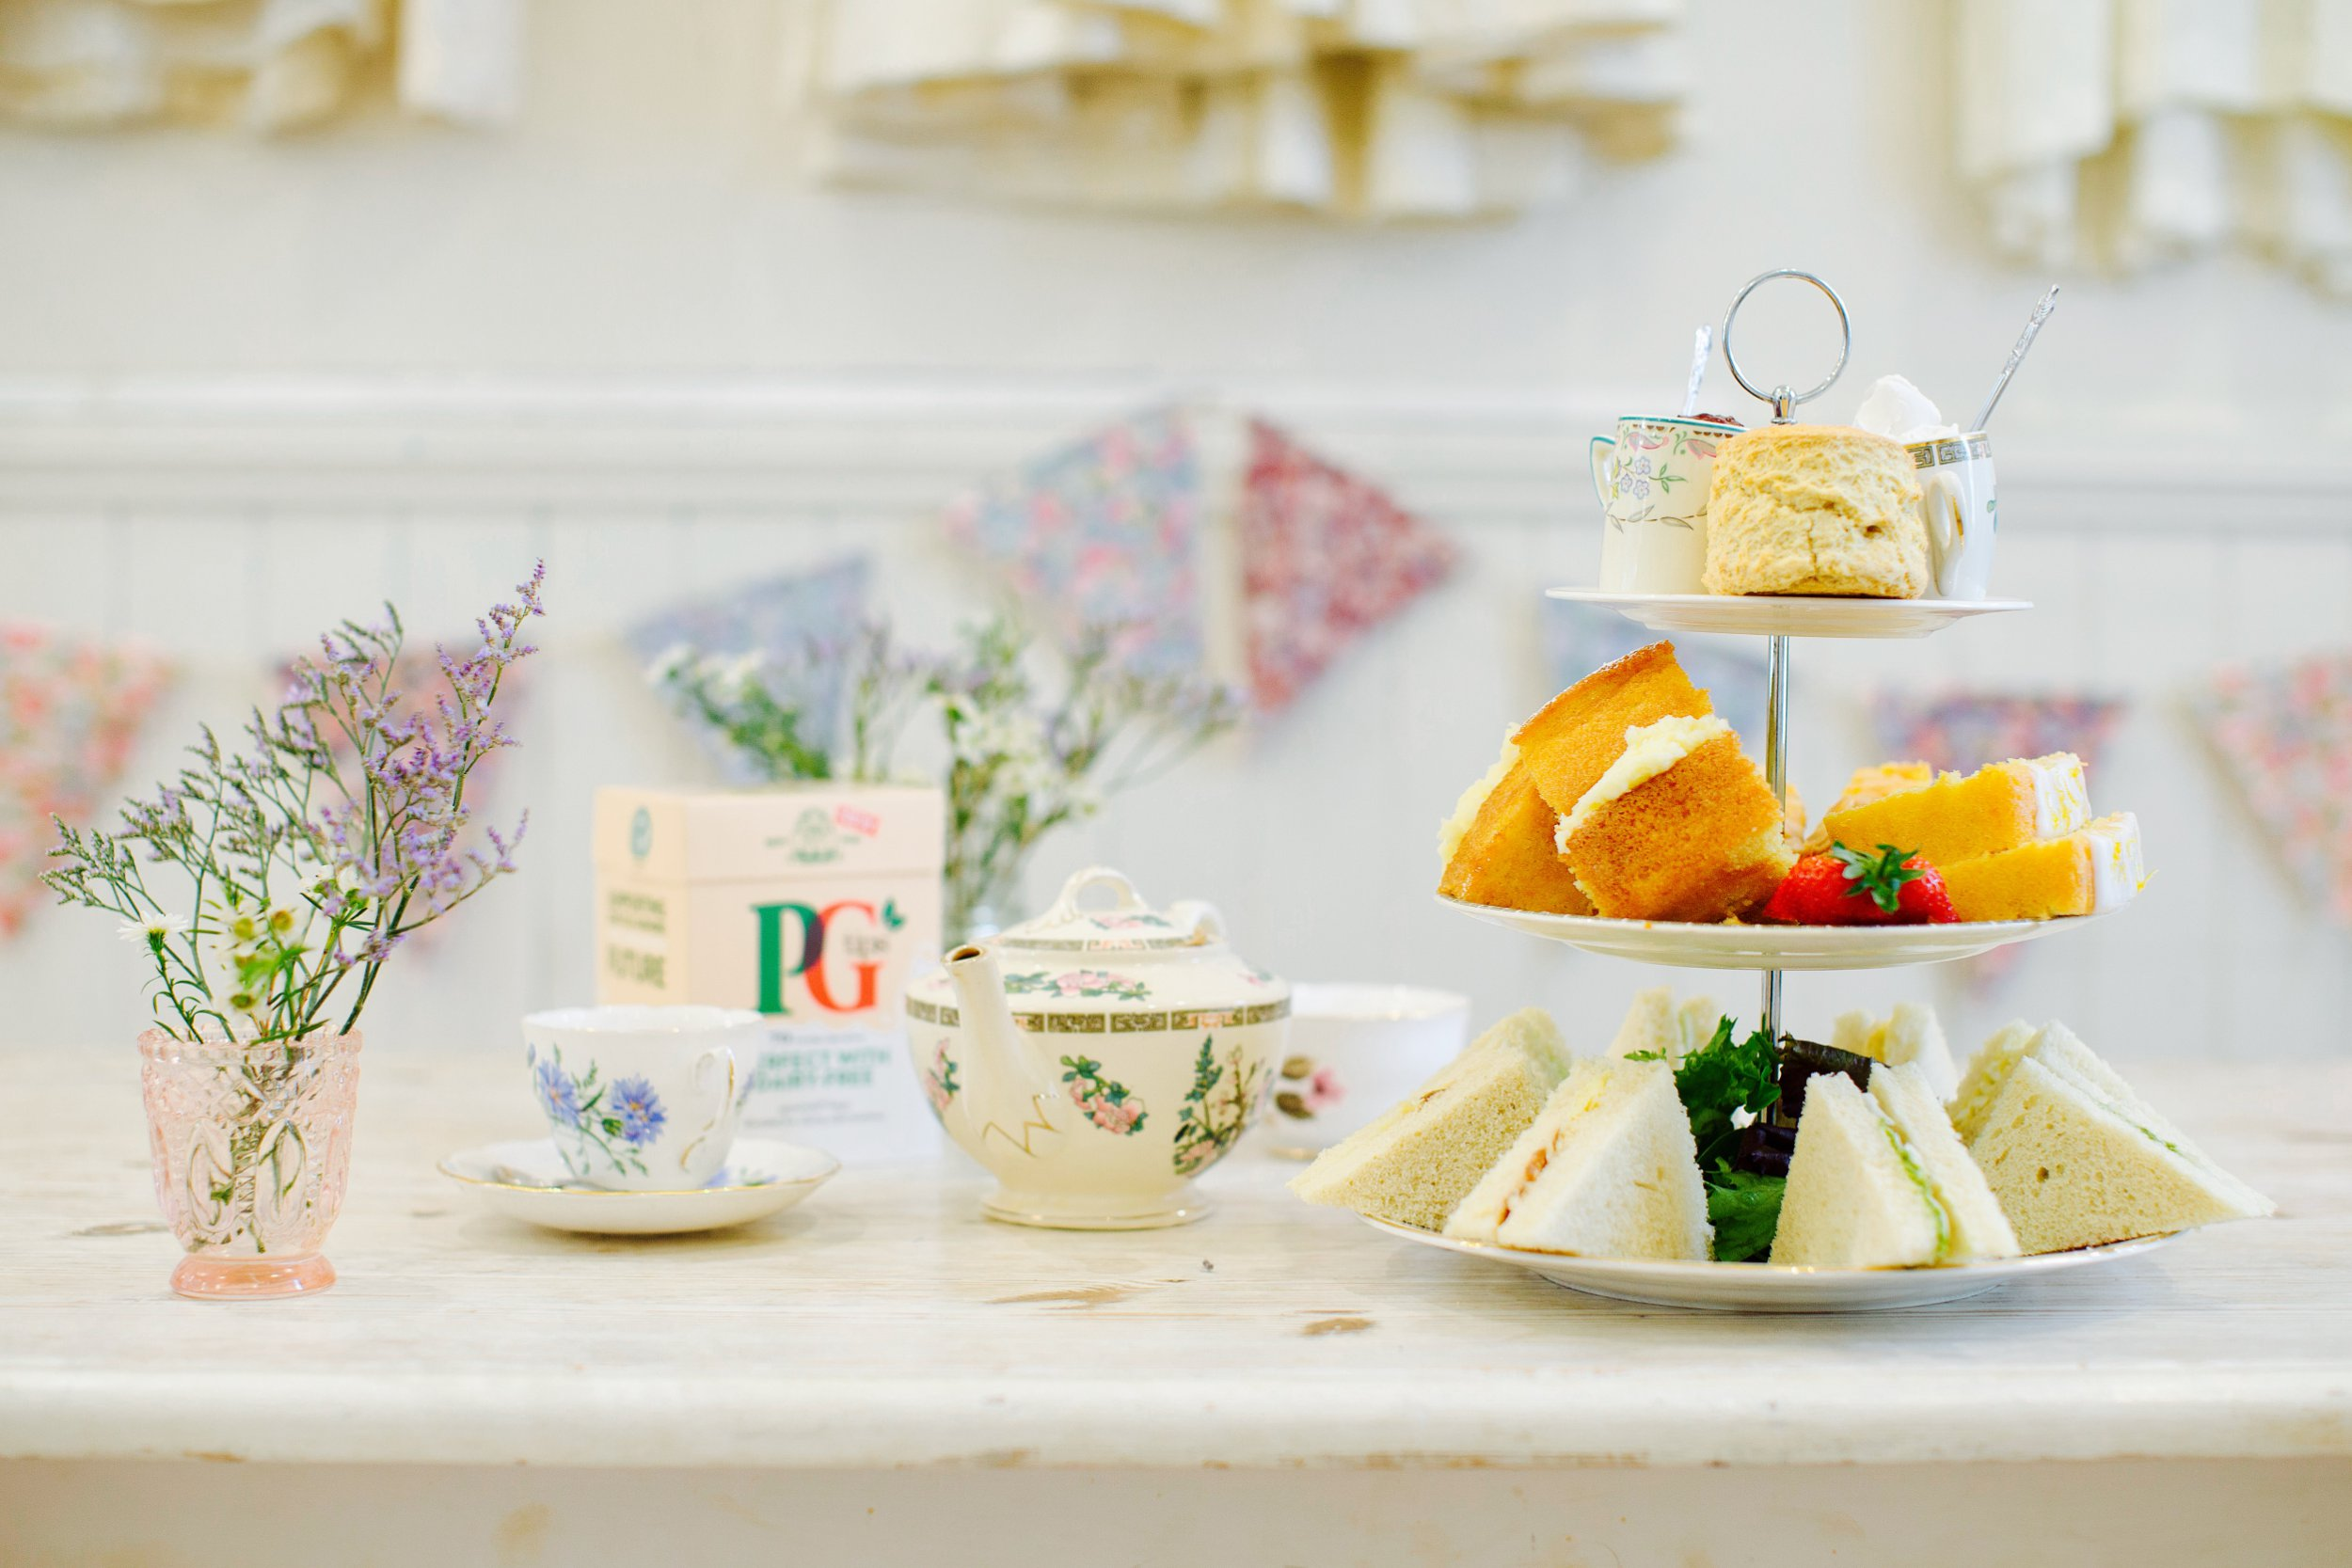 You can get a free afternoon tea across the UK next week